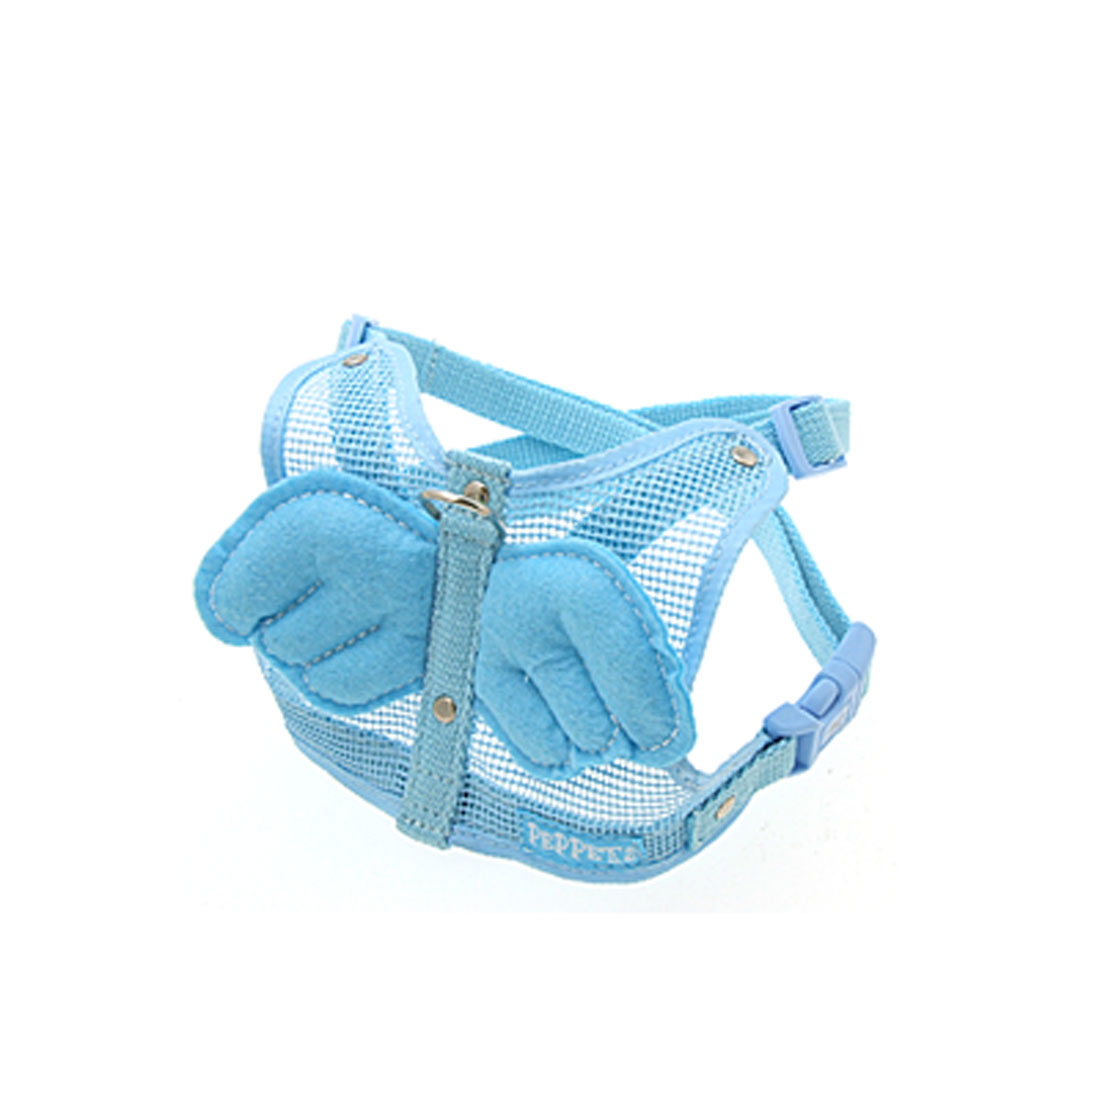 Size Medium Cat Dog Pets Harness Vest and Leash Angel Wing Blue